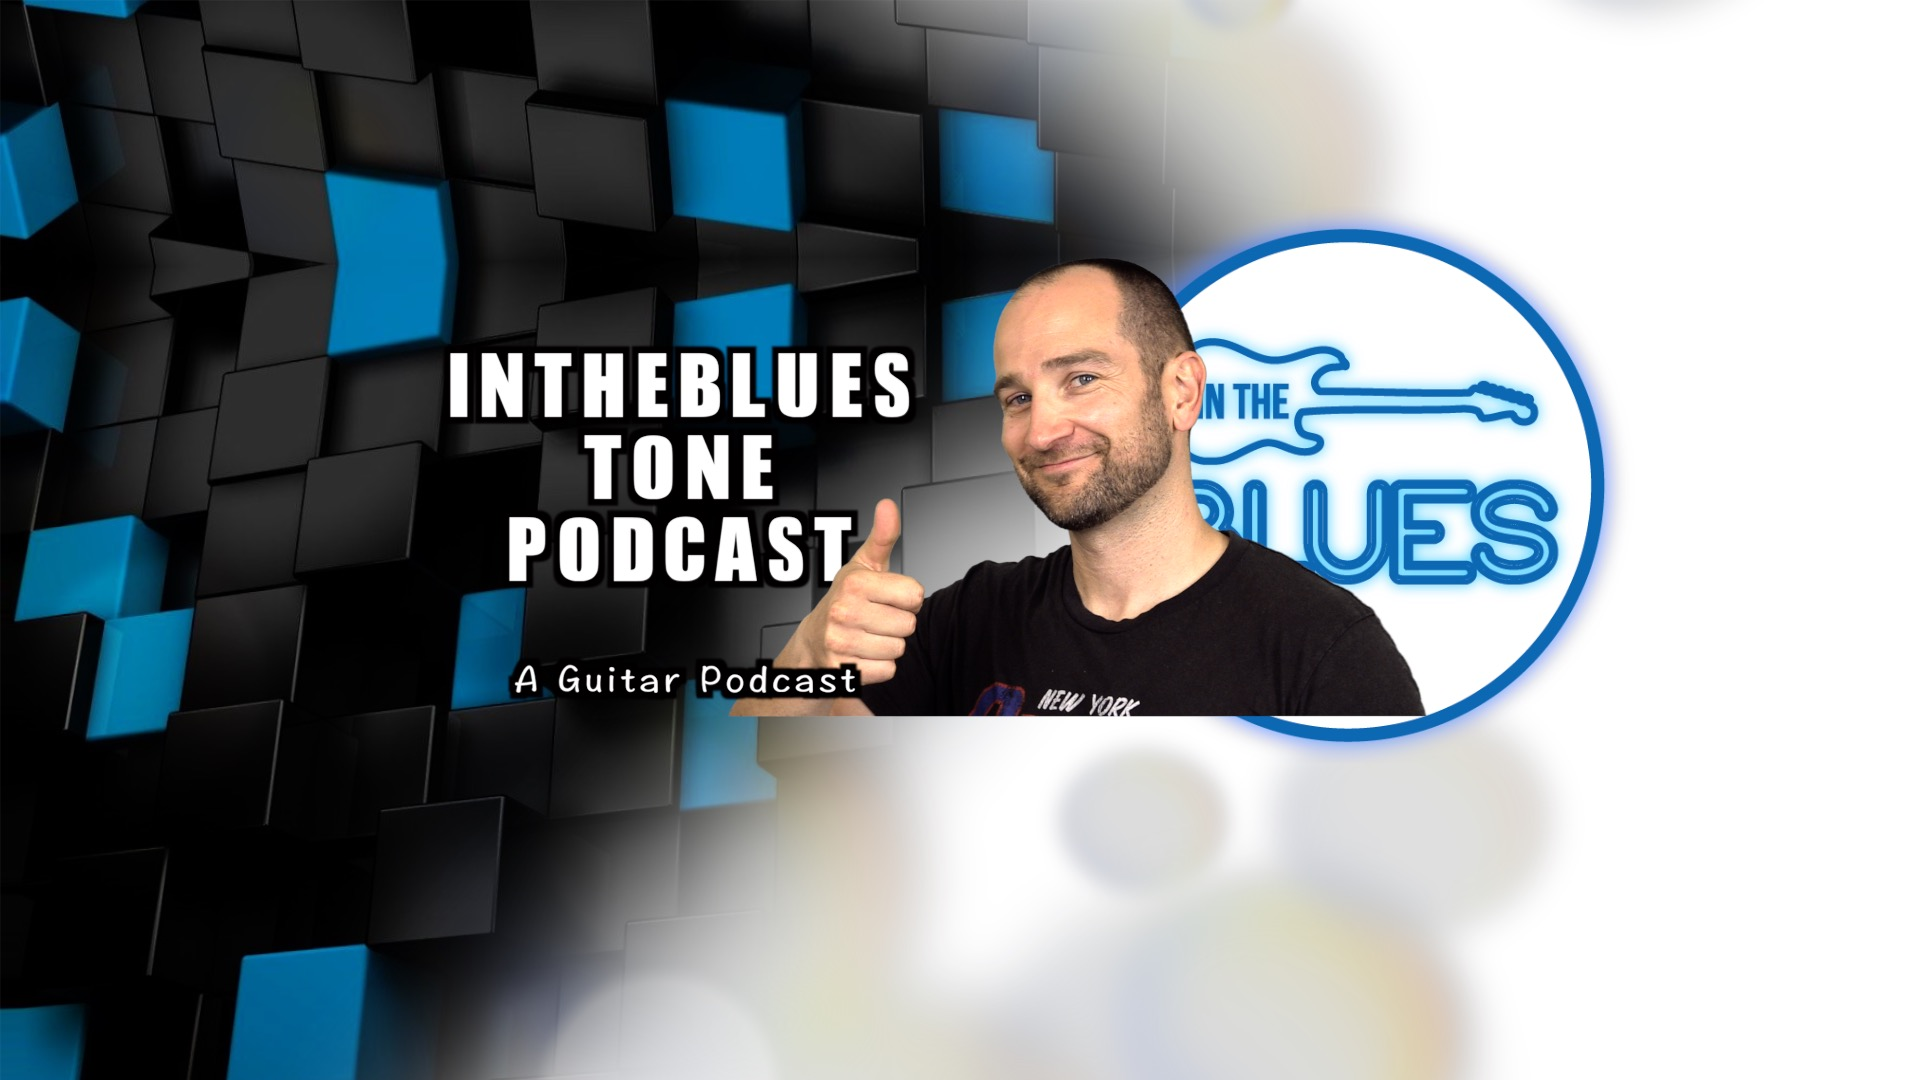 INTHEBLUES Tone Podcast - A Guitar Podcast